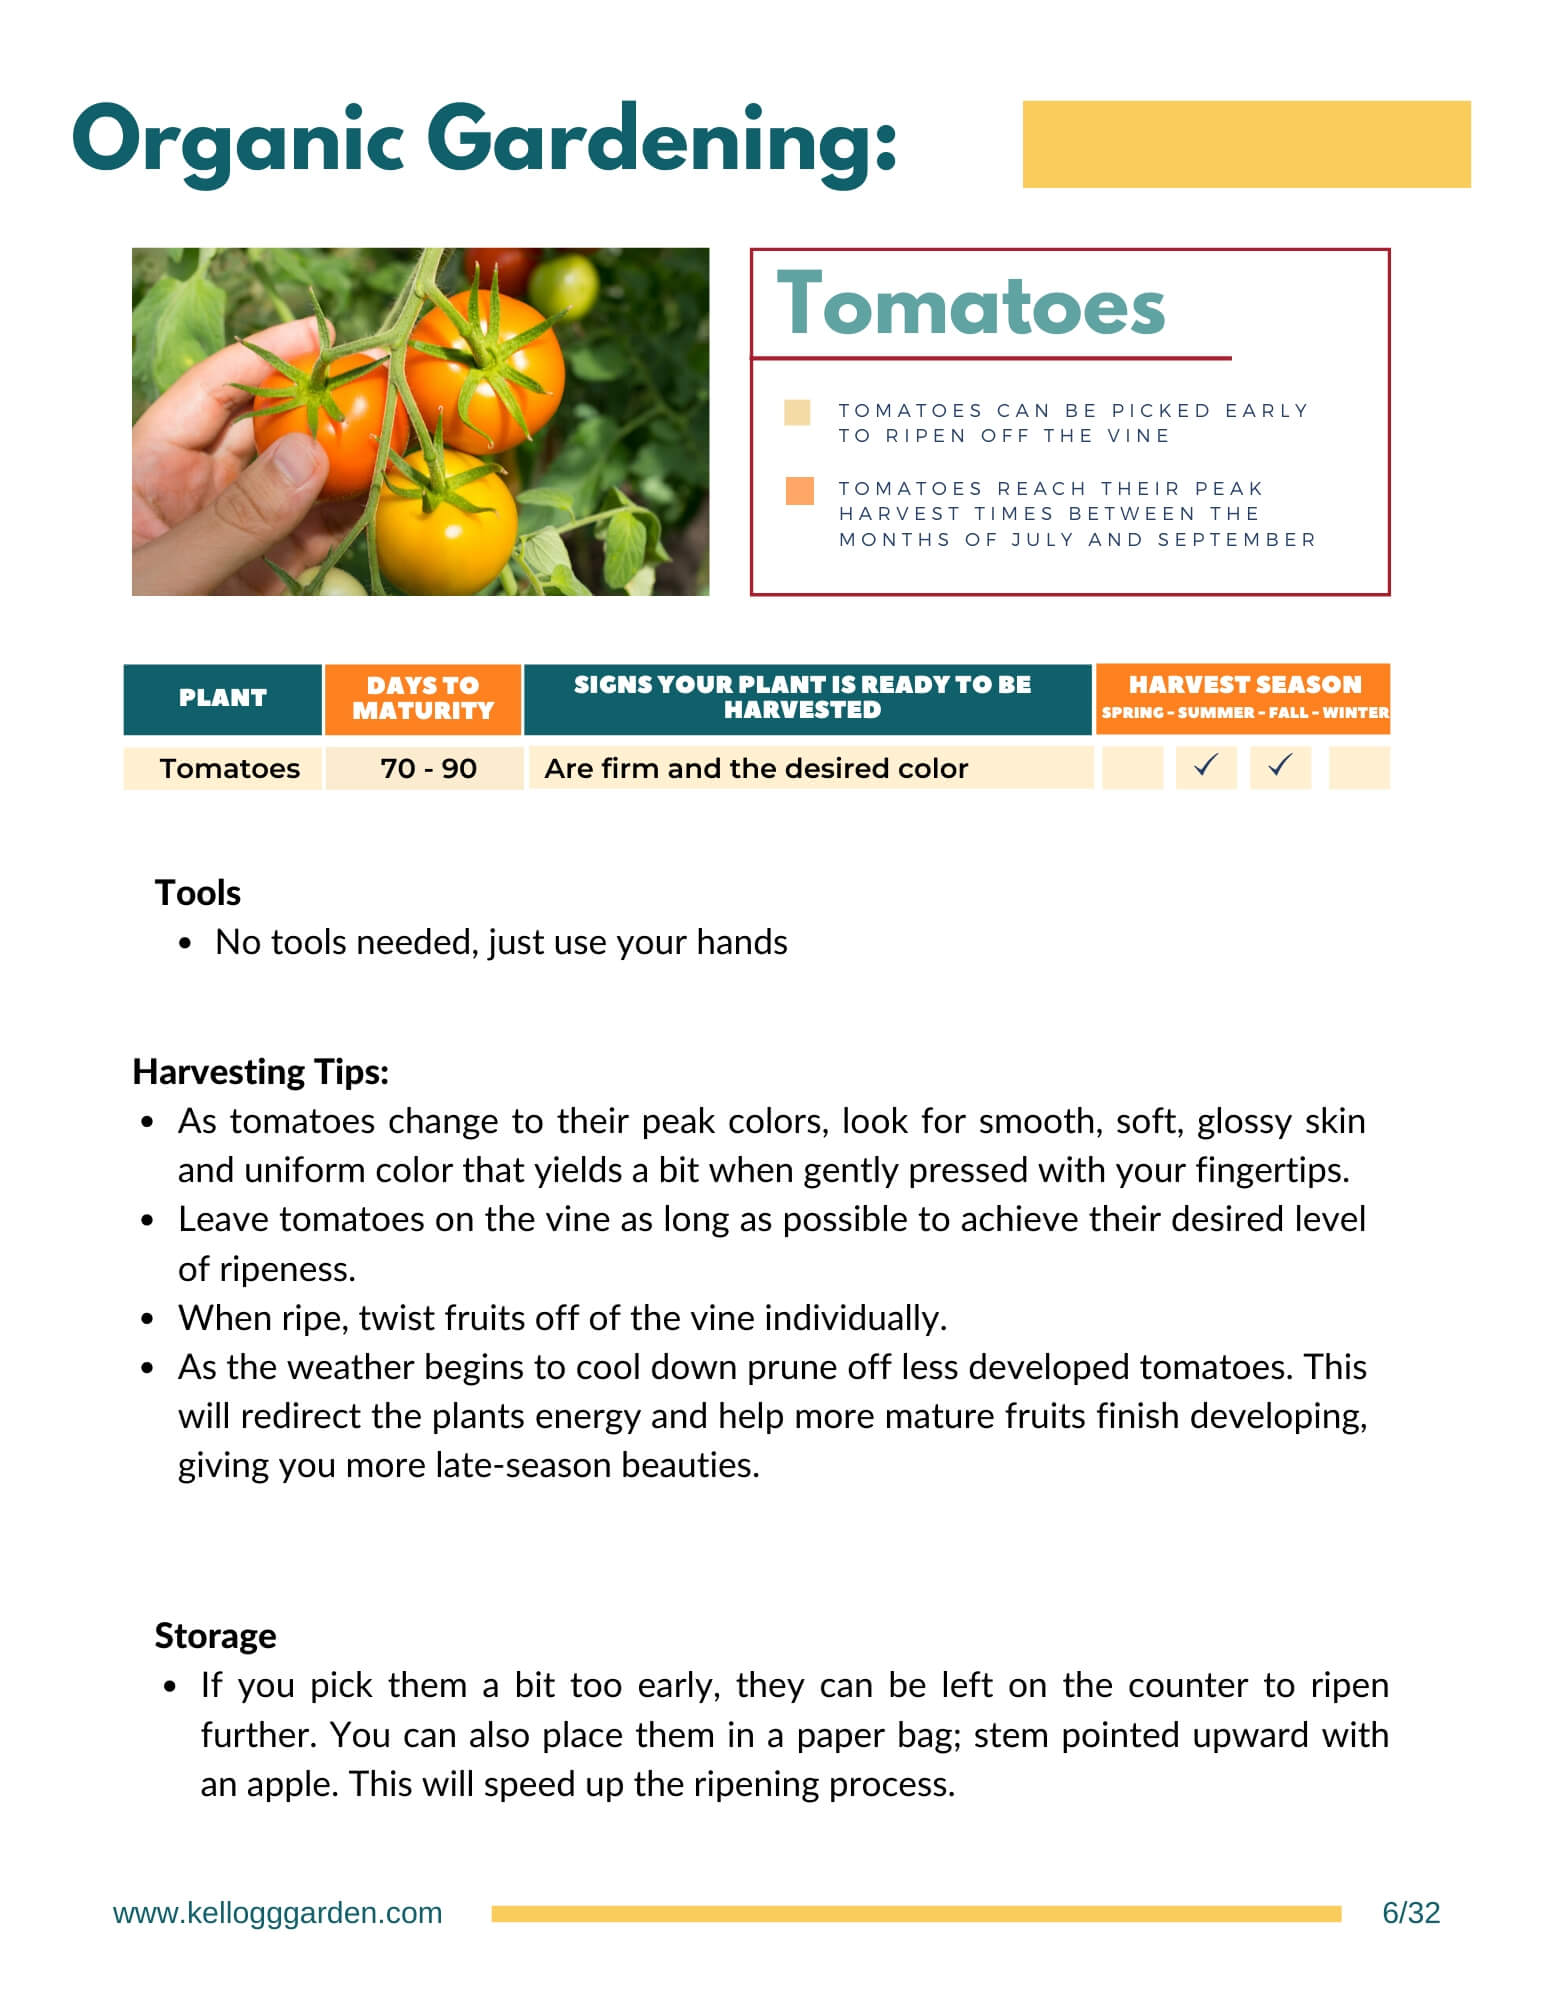 Harvesting guide page on harvesting tomatoes.